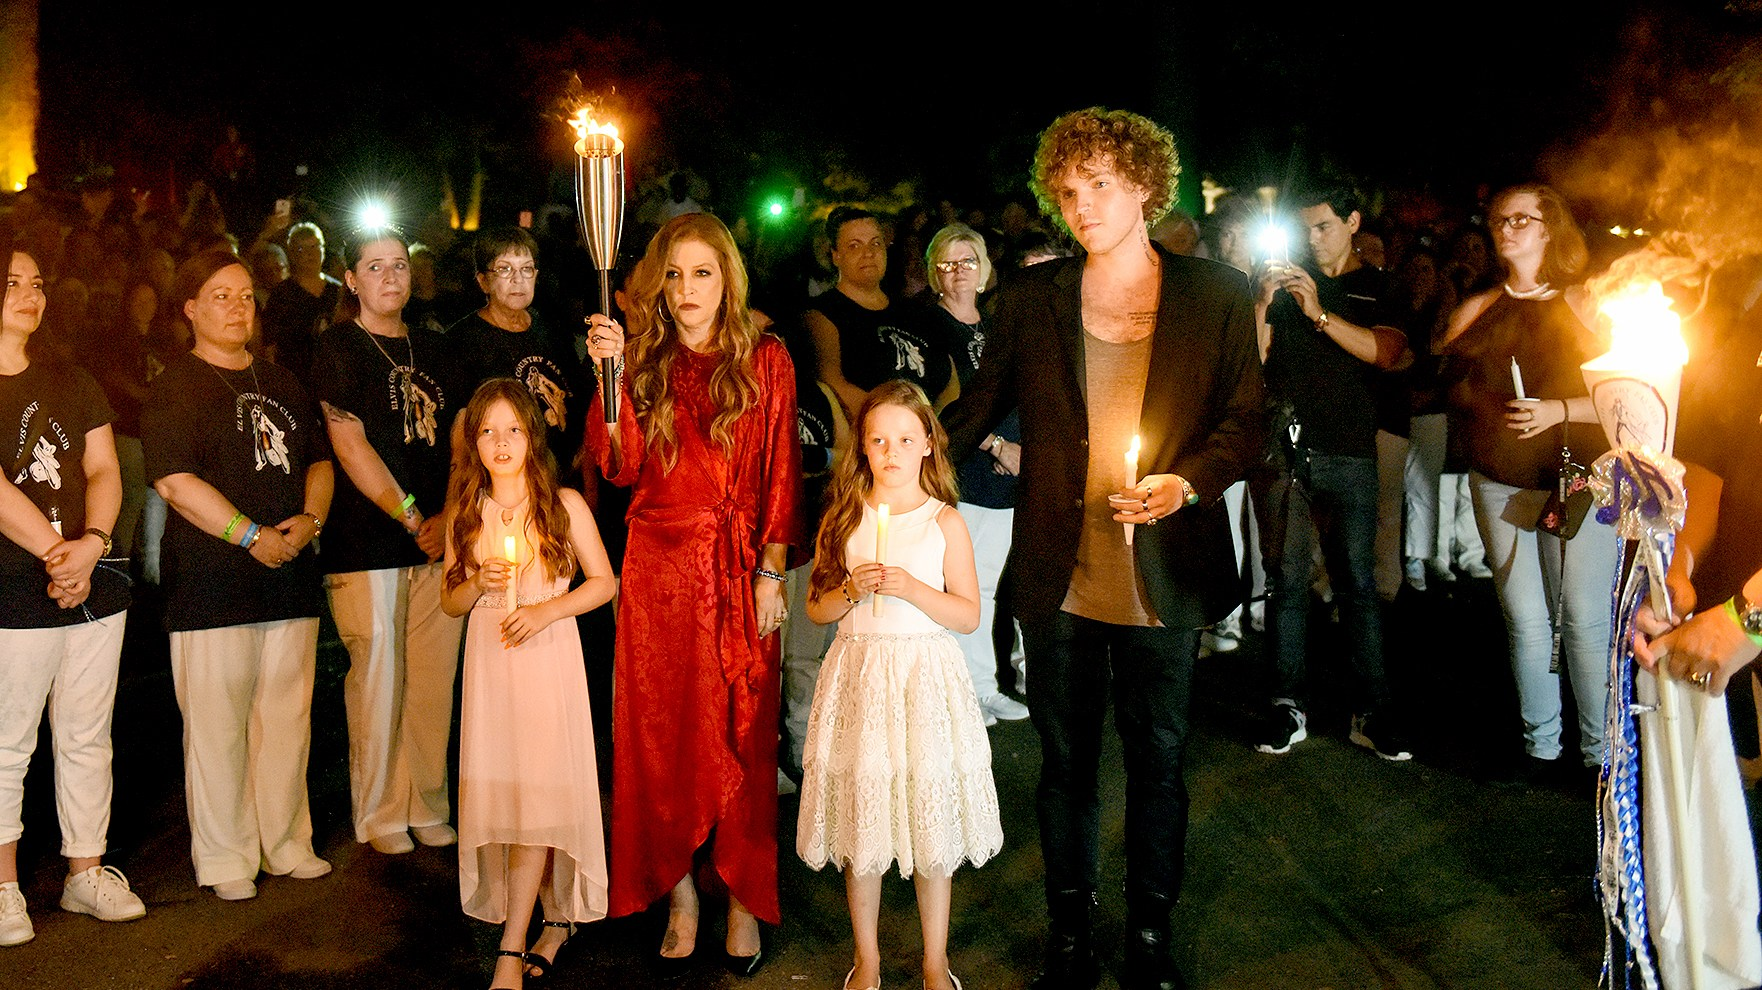 On the 40th anniversary of his passing, Harper Lockwood, Lisa Marie Presley, Finley Lockwood, and Ben Keough joined over 50 thousand people for the candlelight vigil at Graceland, in honor of Elvis.